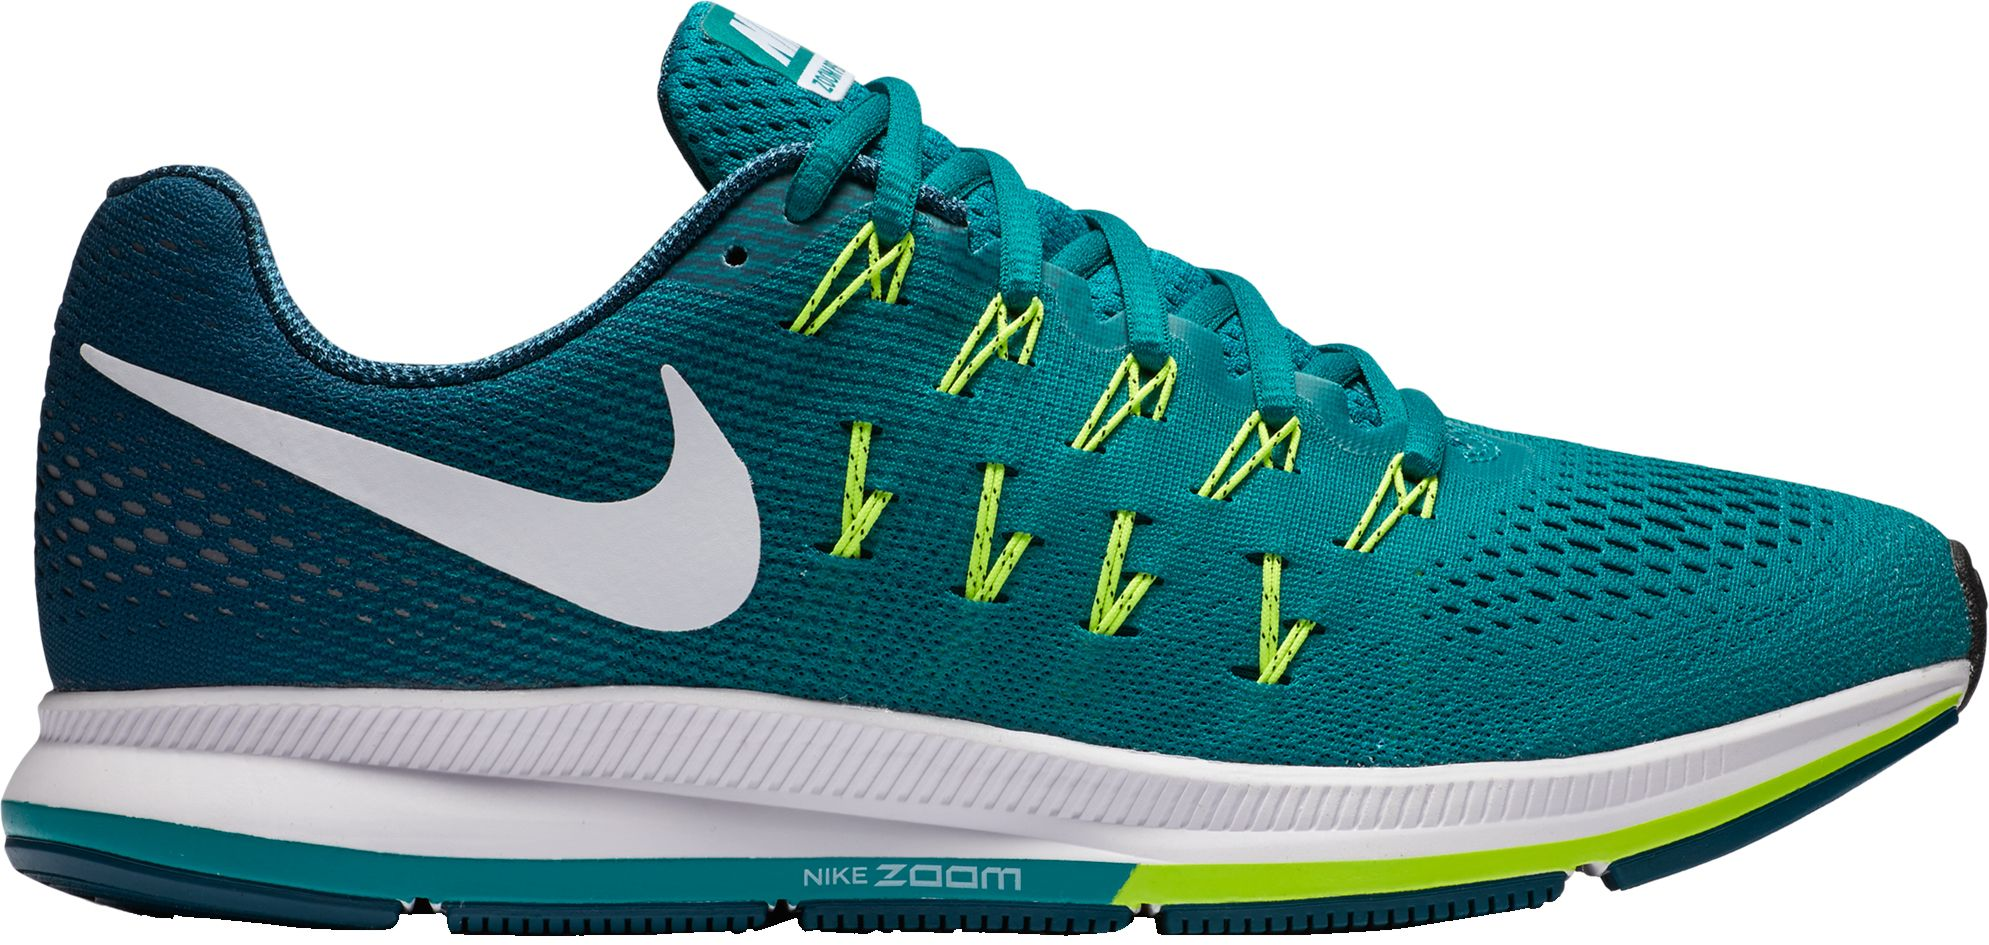 Nike Men's Zoom Pegasus 33 Running Shoes | DICK'S Sporting Goods